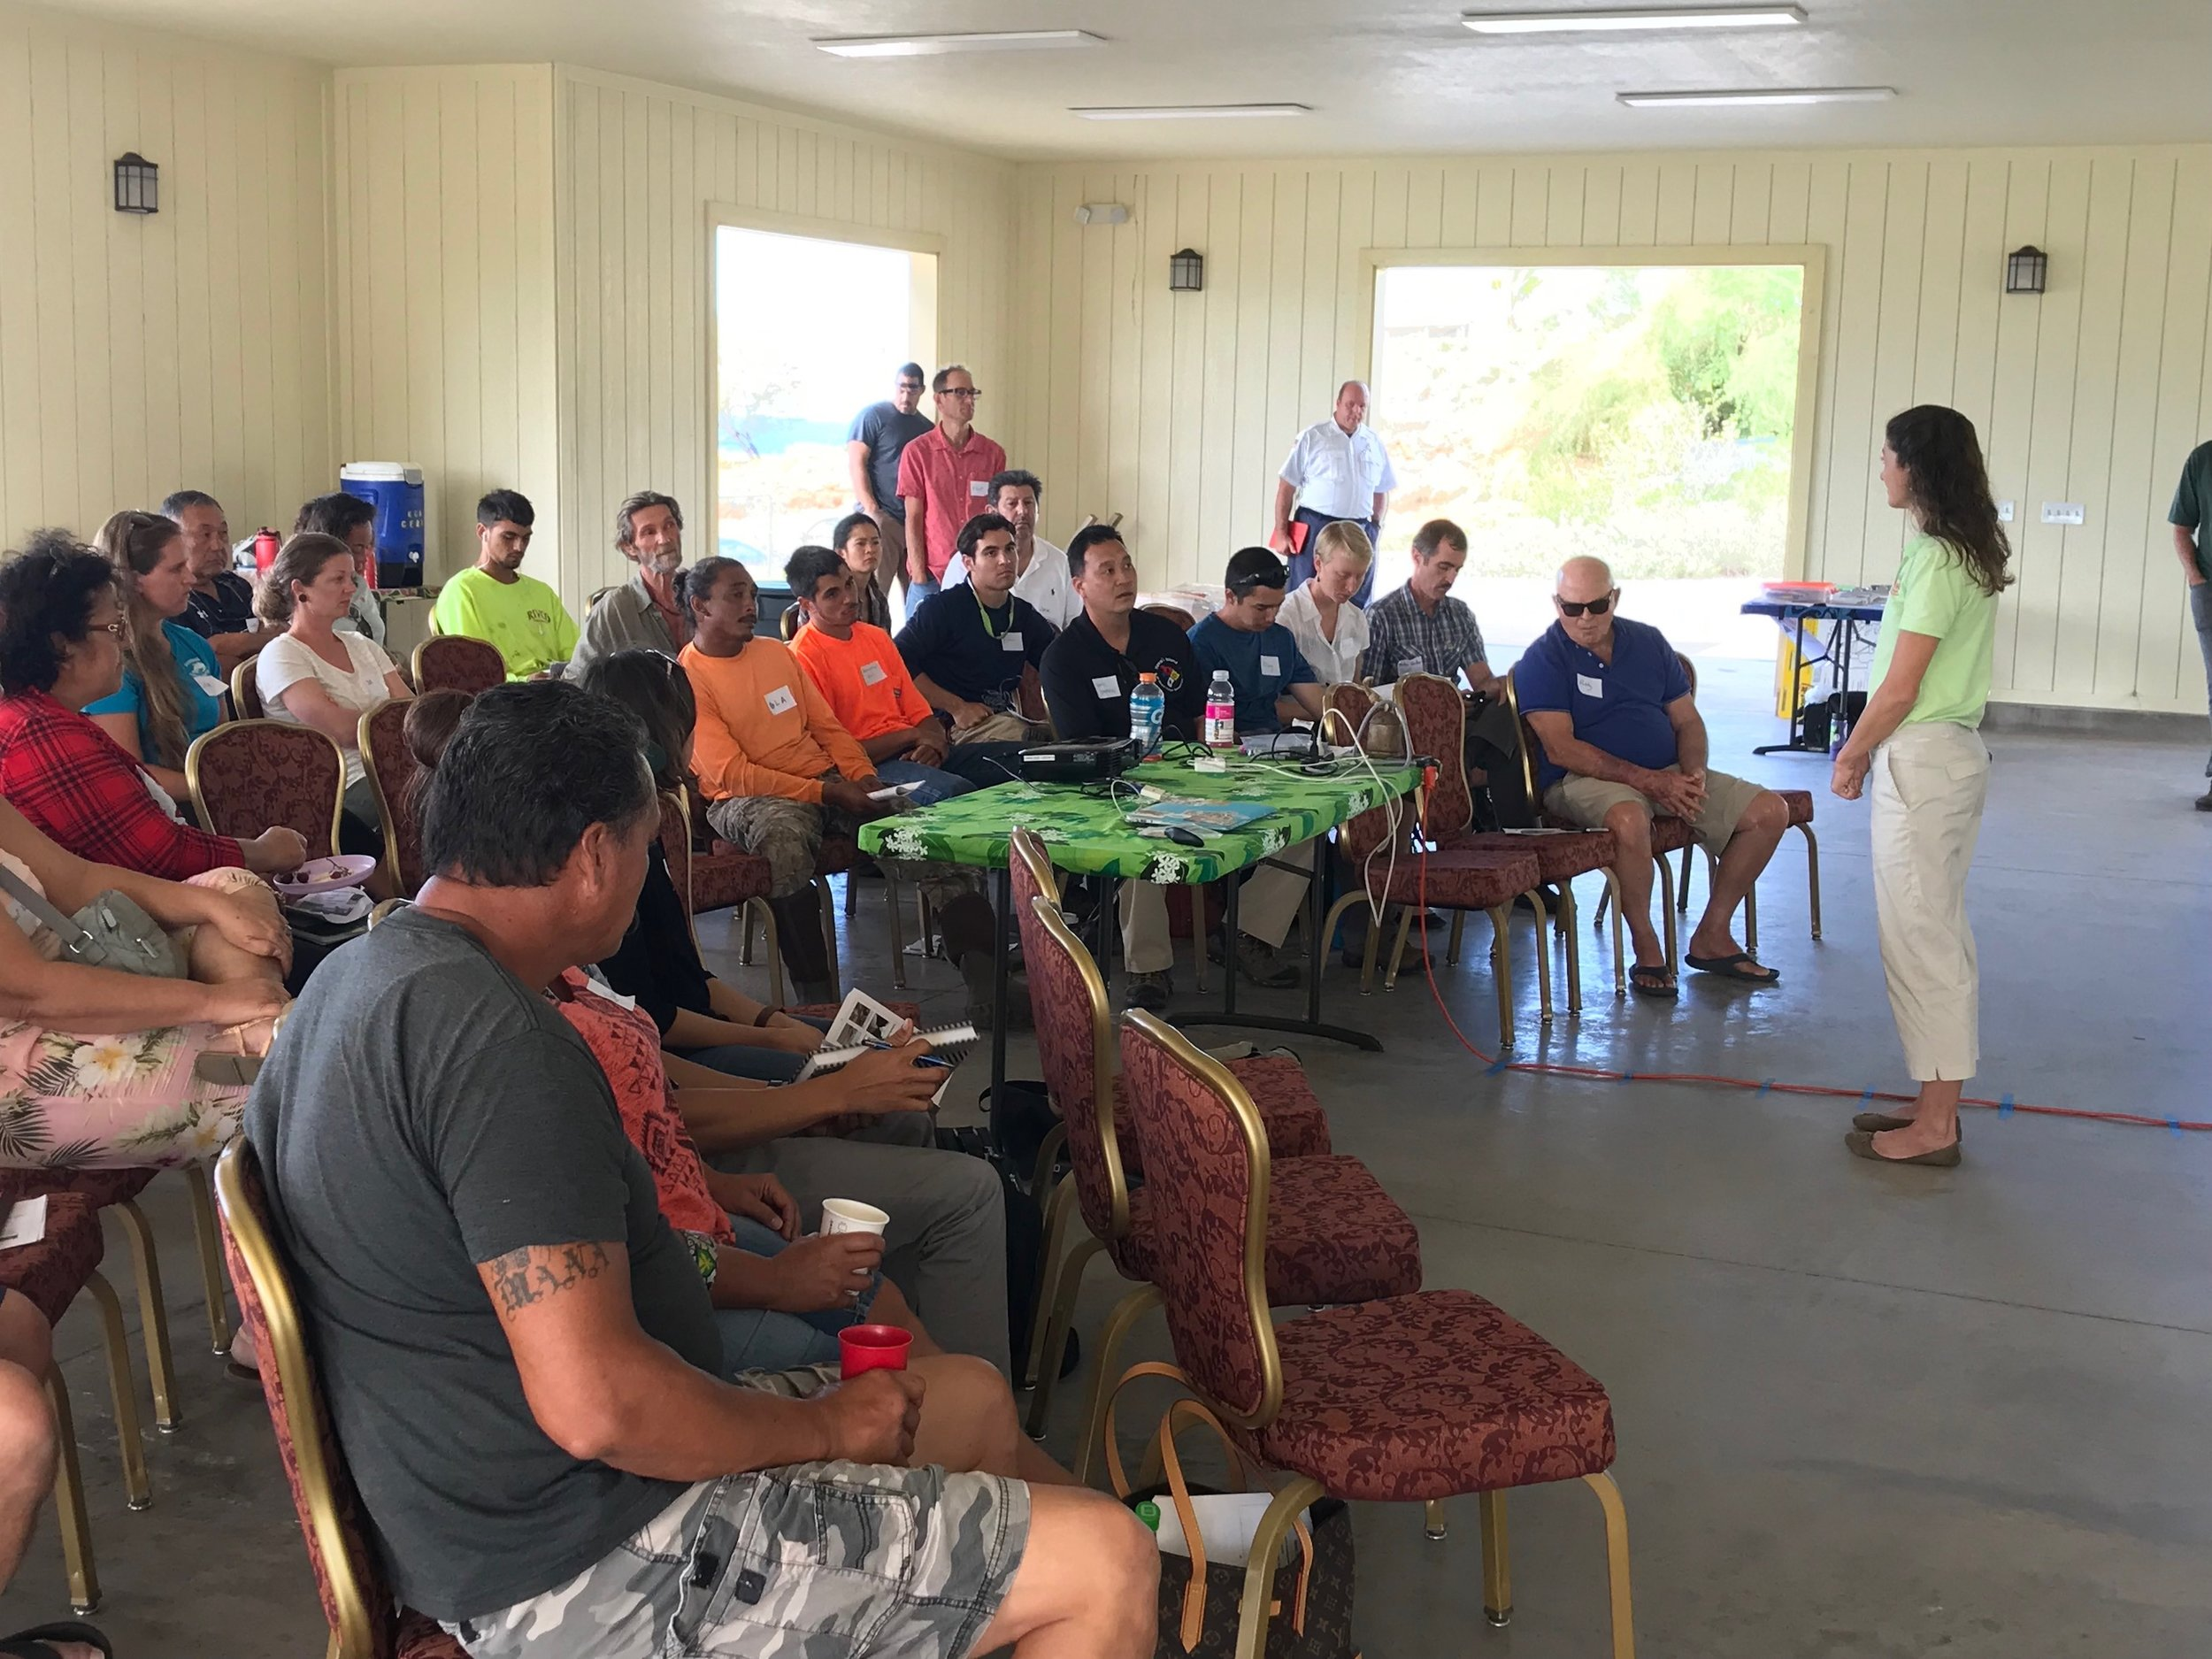 Hawaii Island Kailapa Vegetative Fuels Management Collaborative Action Planning Workshop_2_26_2019_64.jpg